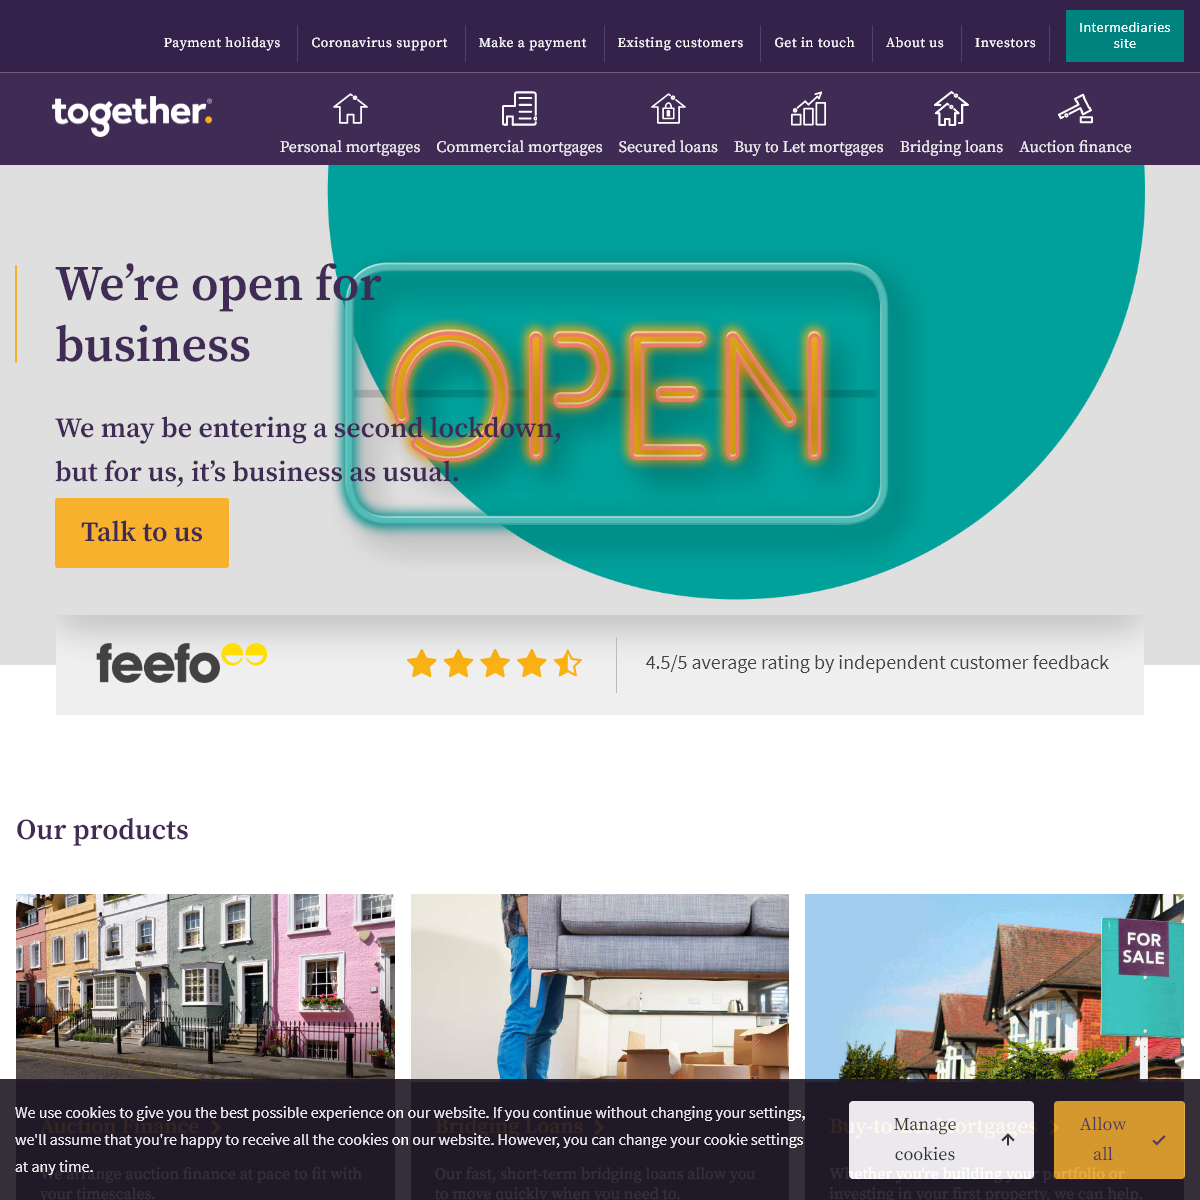 Together - Commercial Mortgages, Bridging Loans & Auction Finance